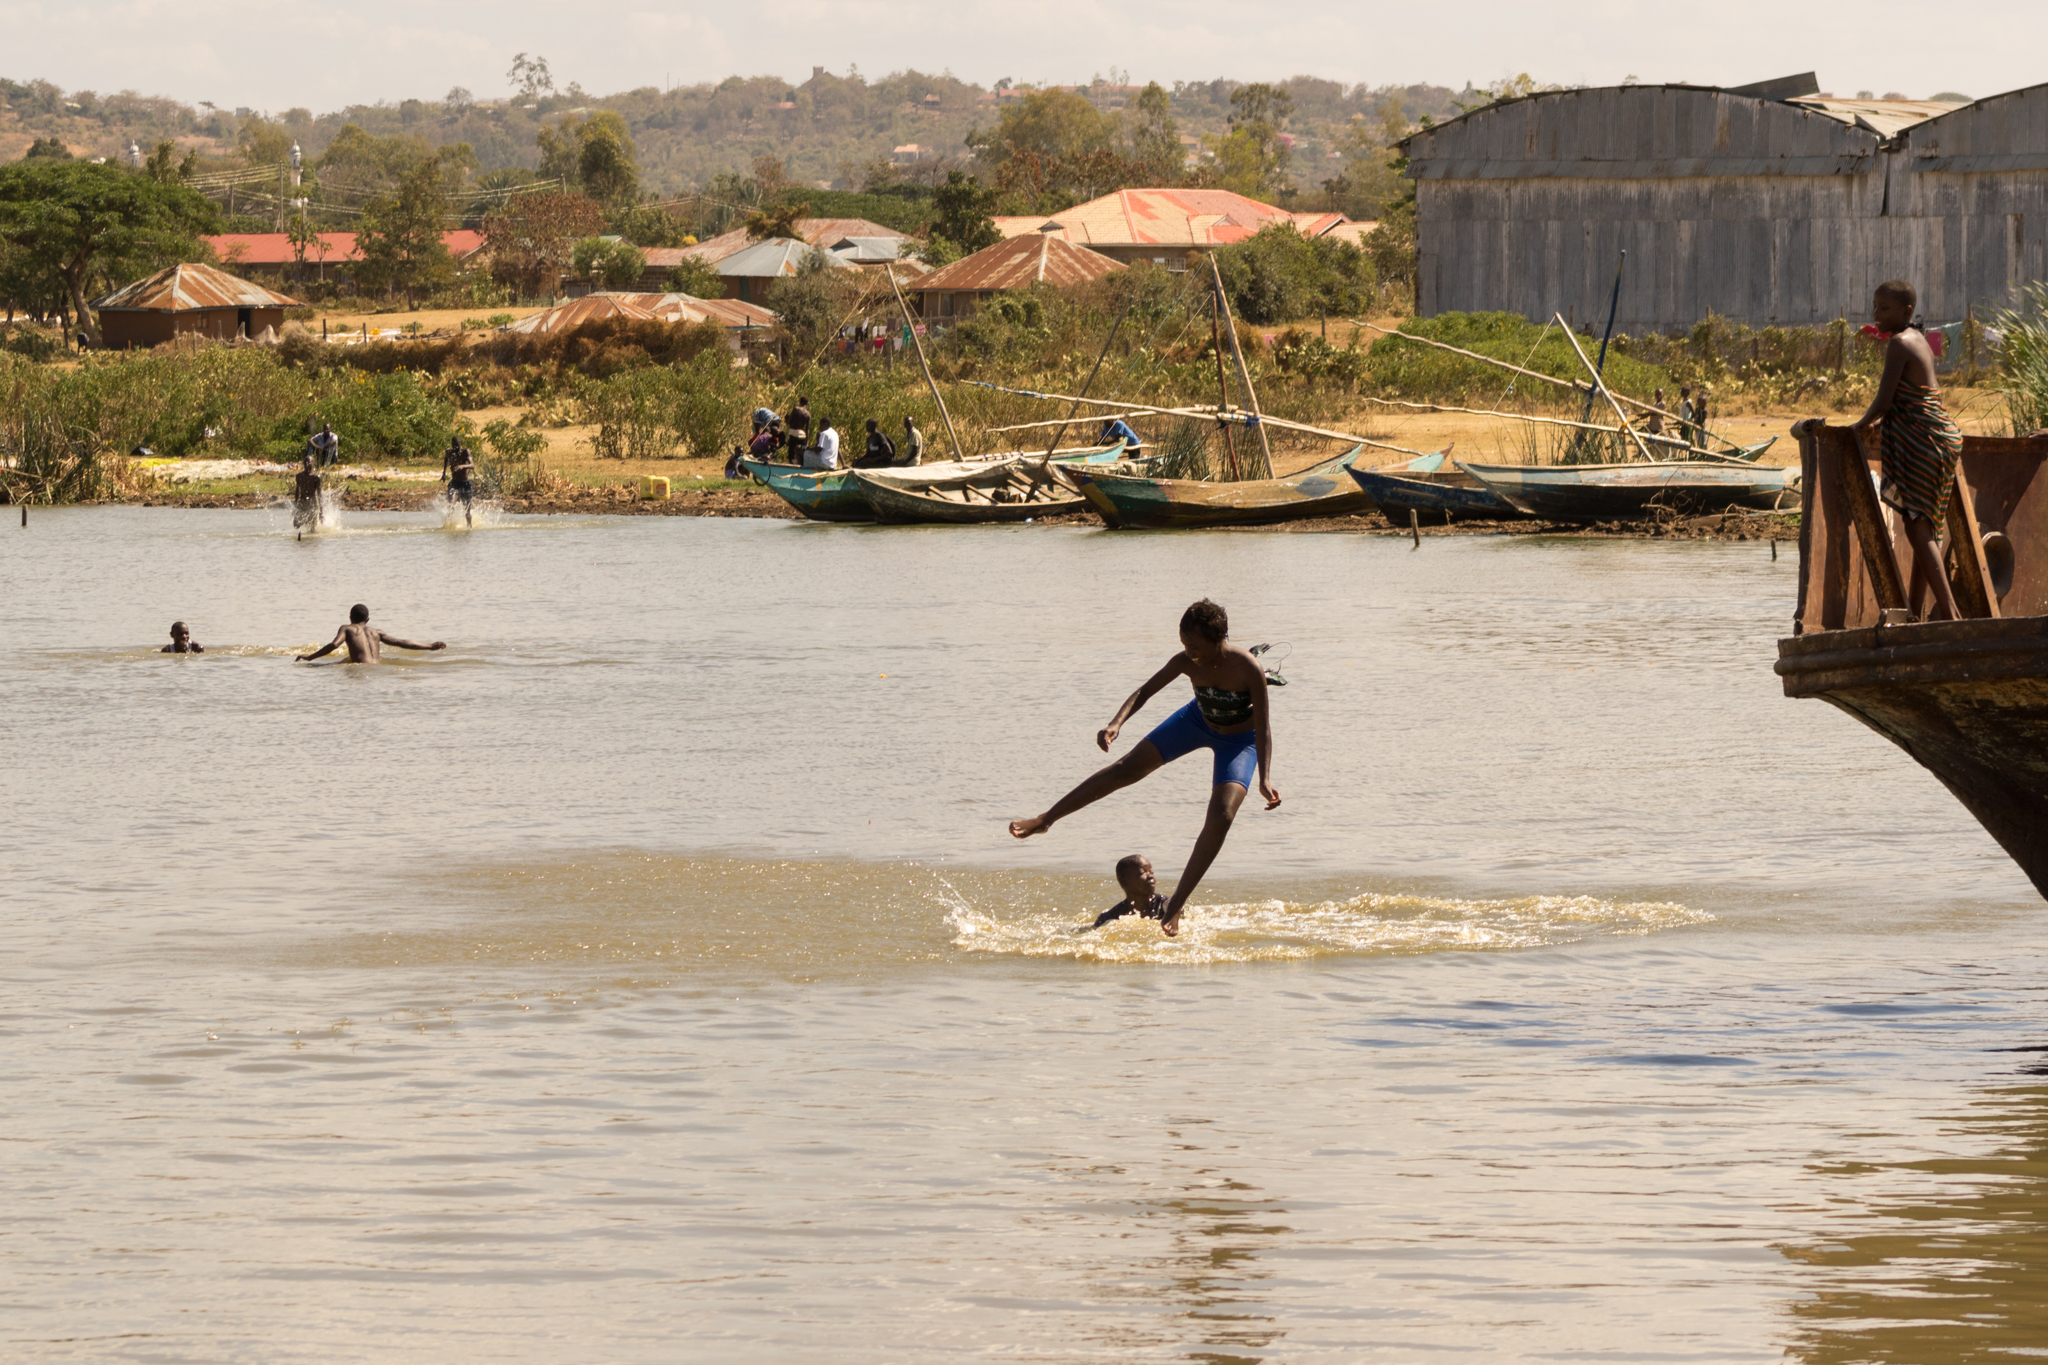 kenya_children_swimming-1.JPG